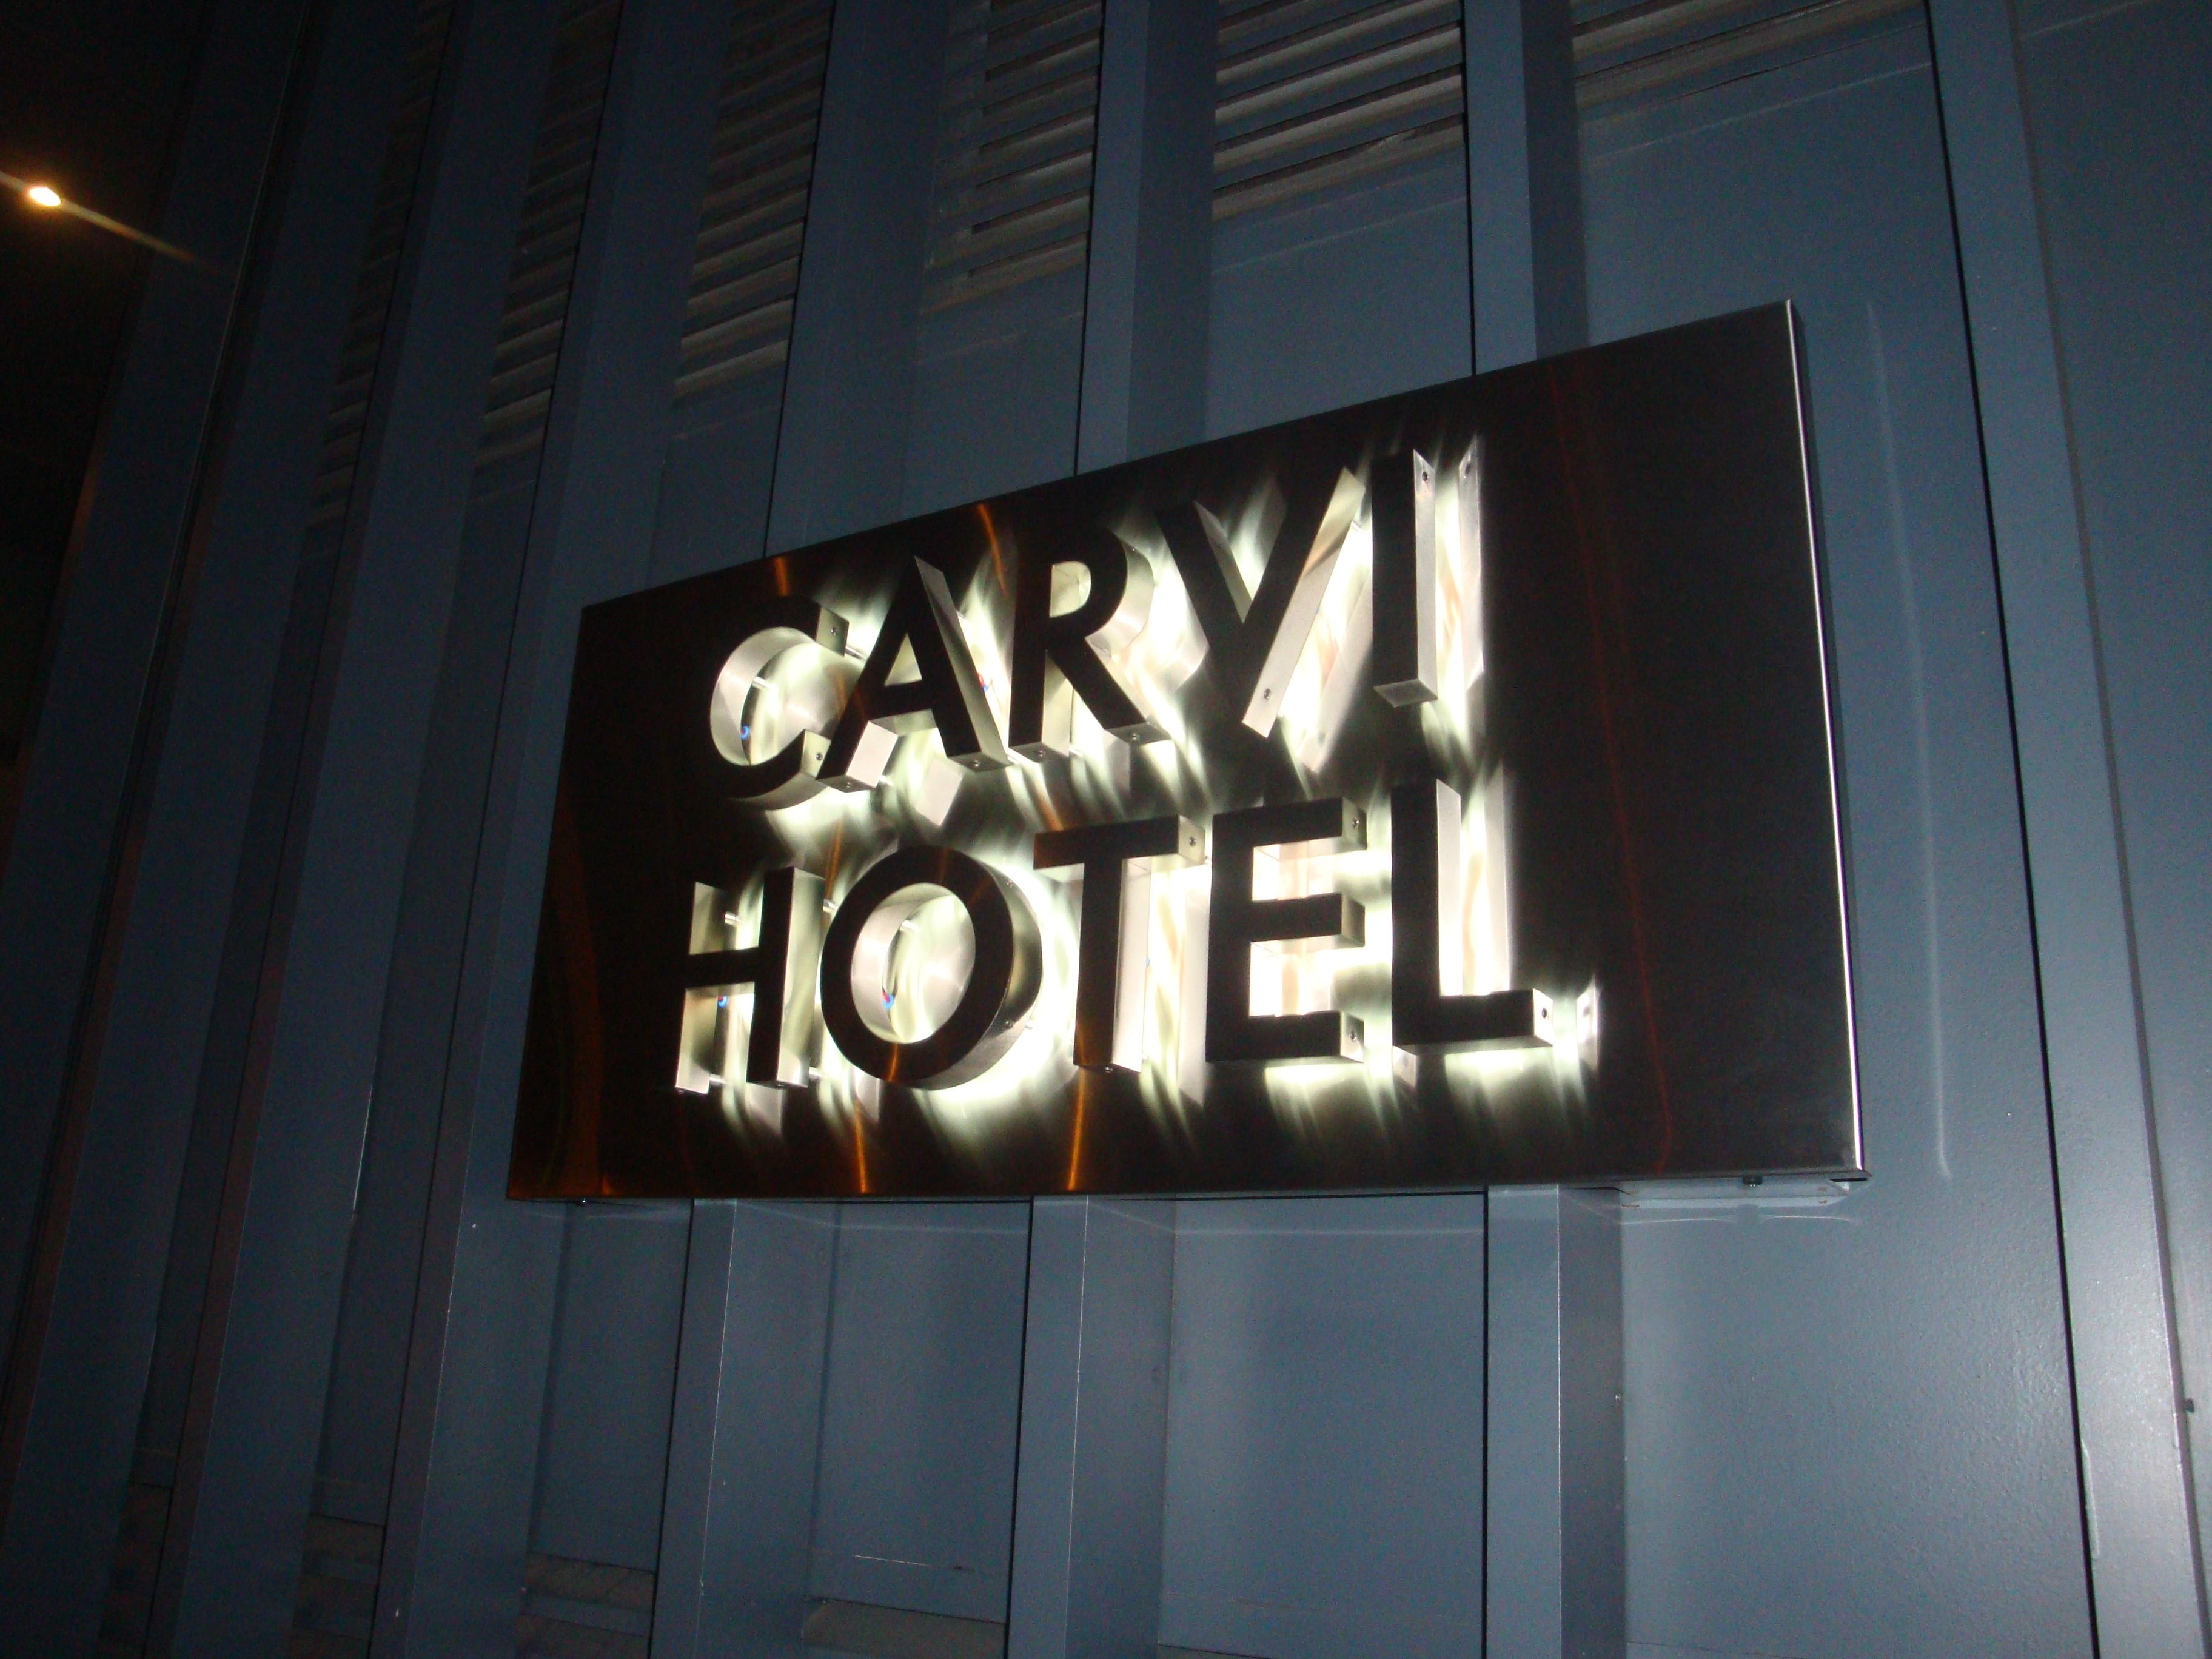 exterior hotel sign nyc - we specialize in custom sign fabrication